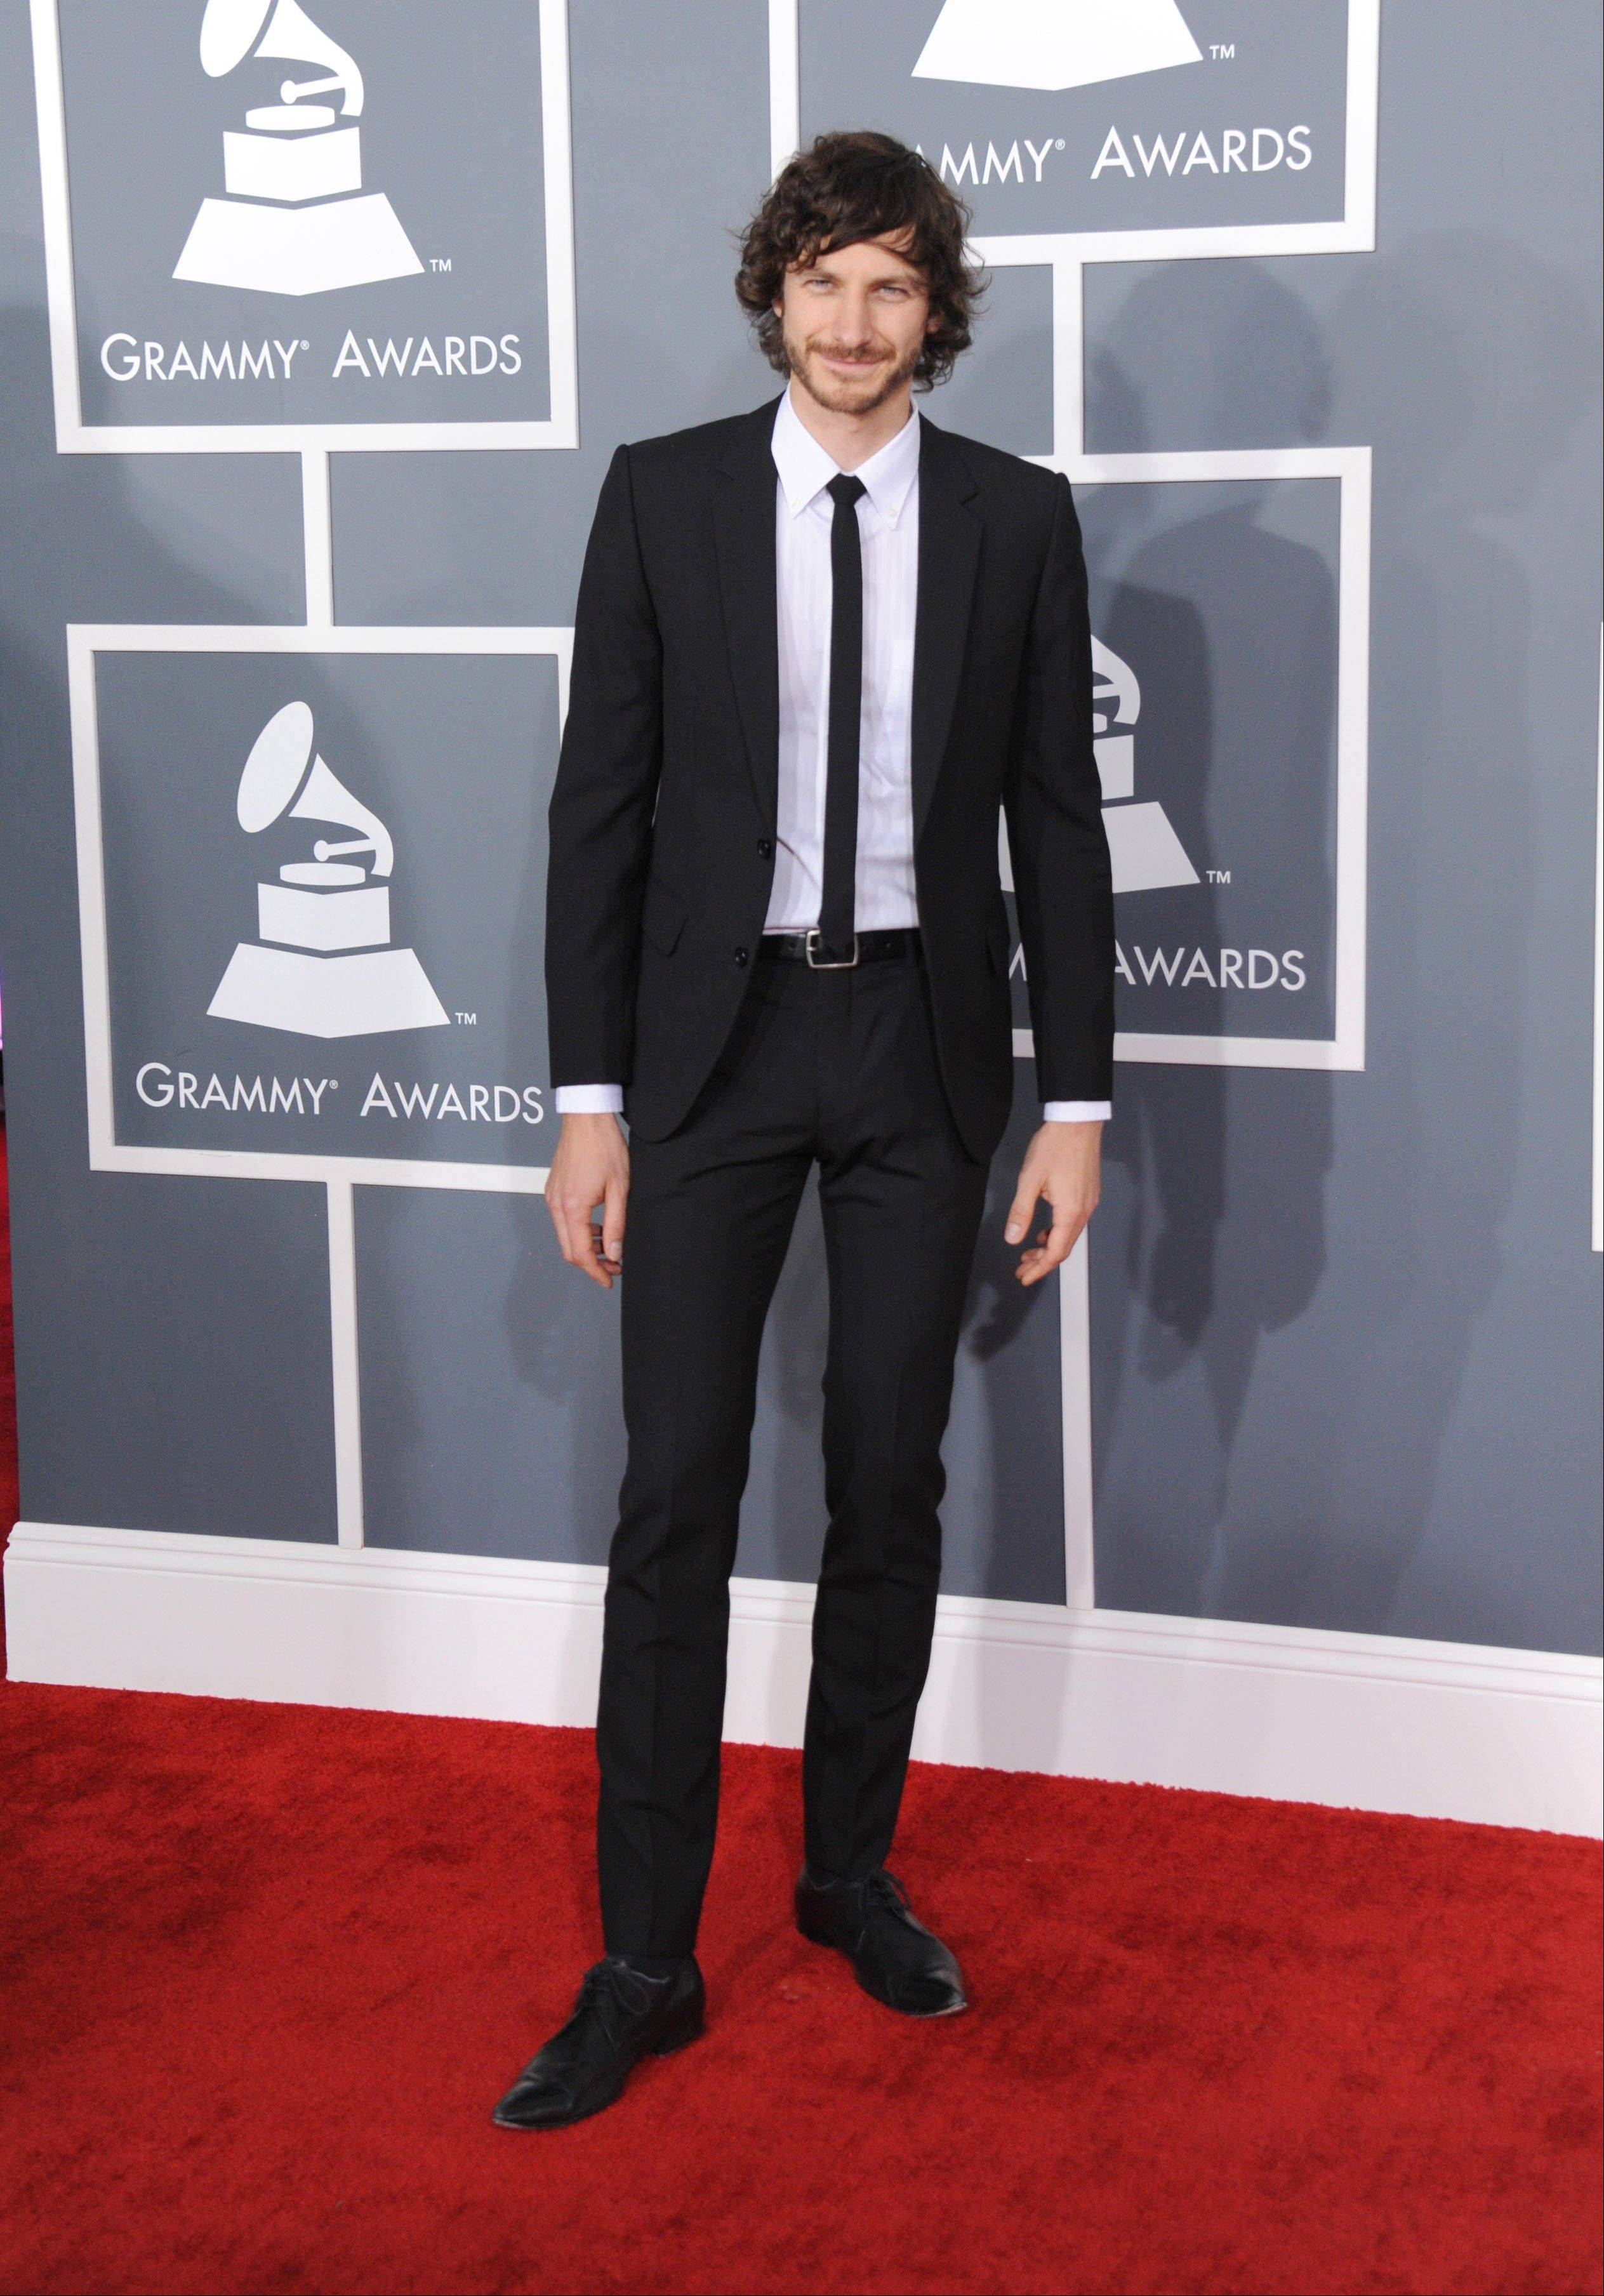 Musician Gotye arrives at the 55th annual Grammy Awards on Sunday, Feb. 10, 2013, in Los Angeles.